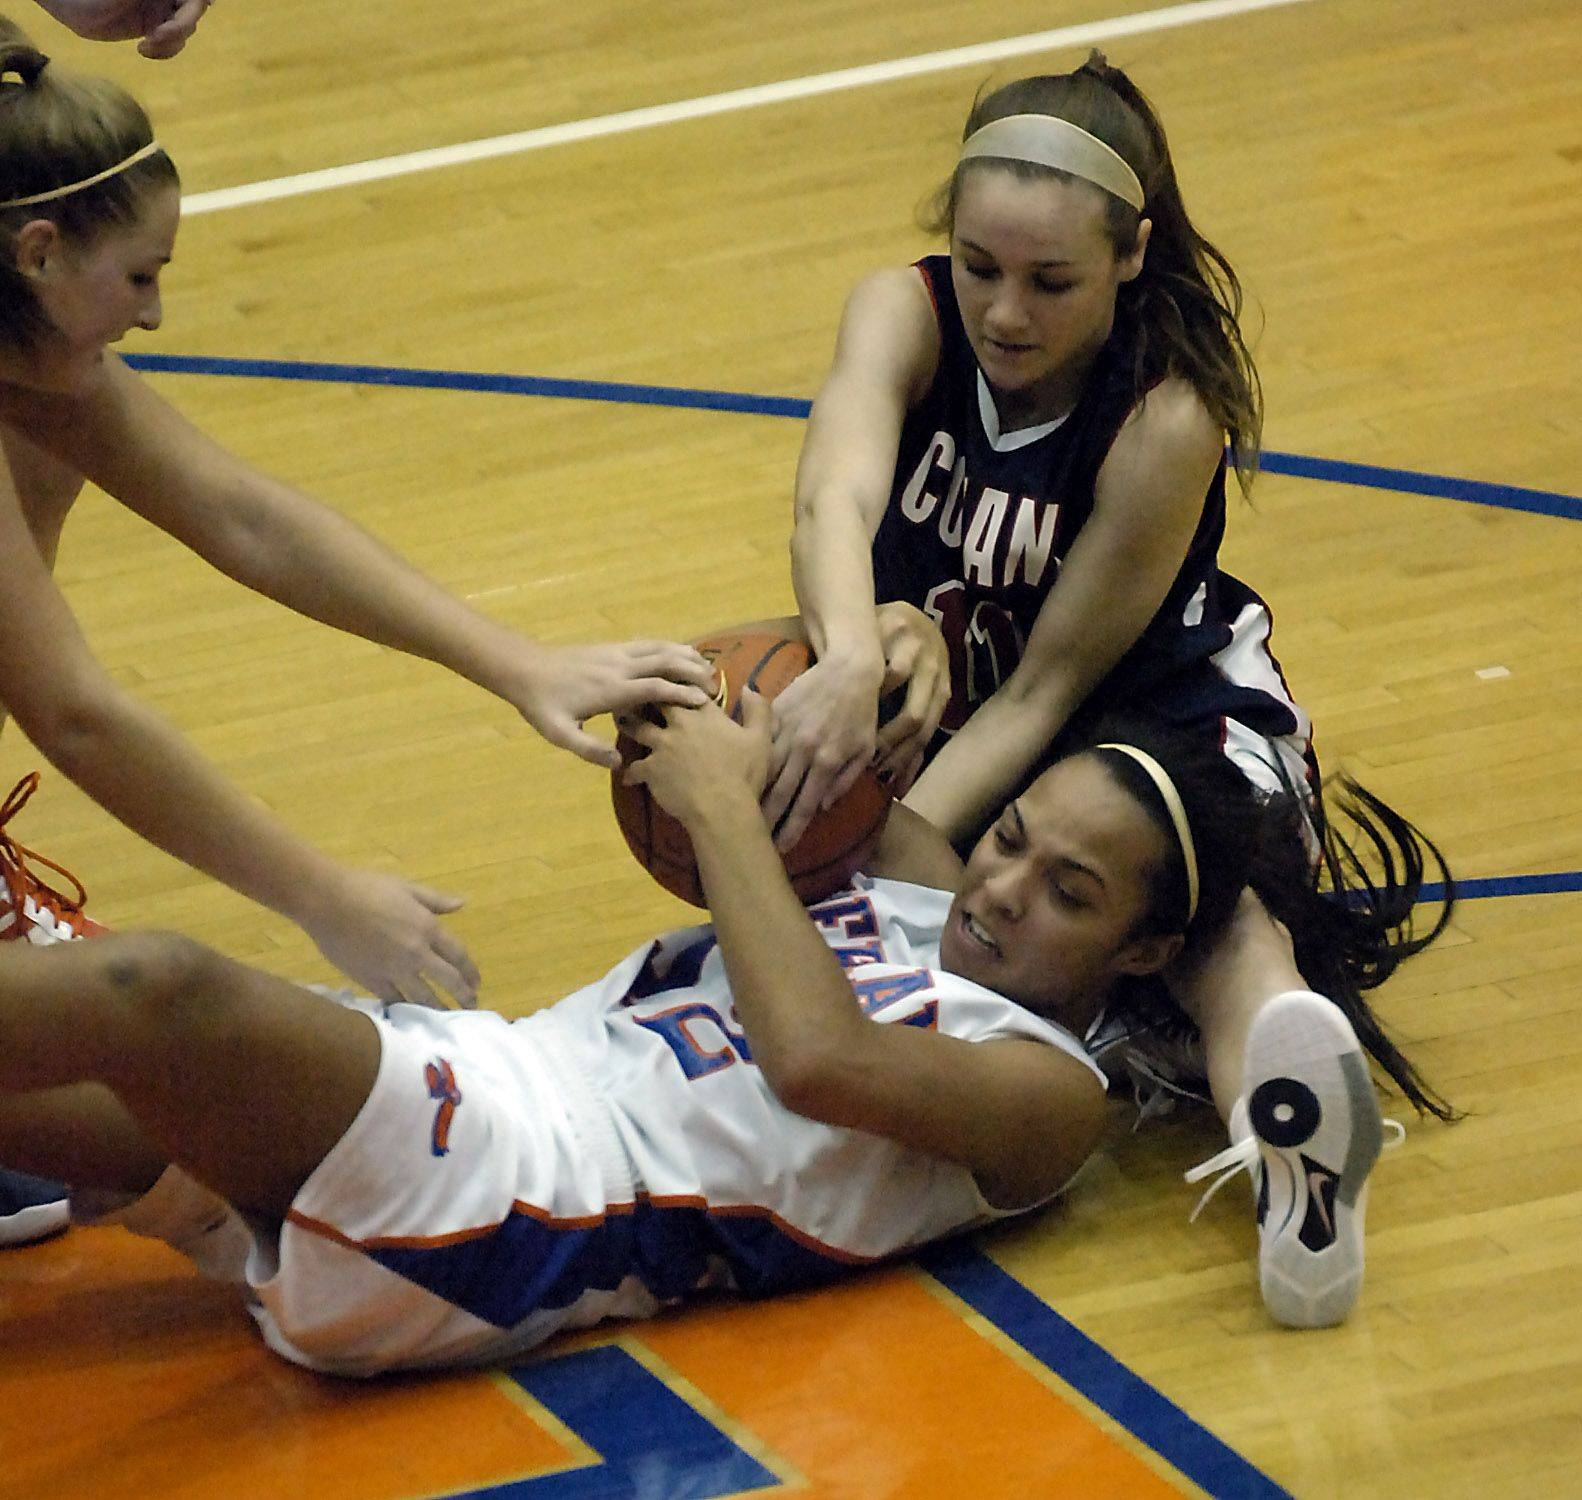 Conant's Hailey Andress and Hoffman Estates' Jada Stotts battle for the ball.